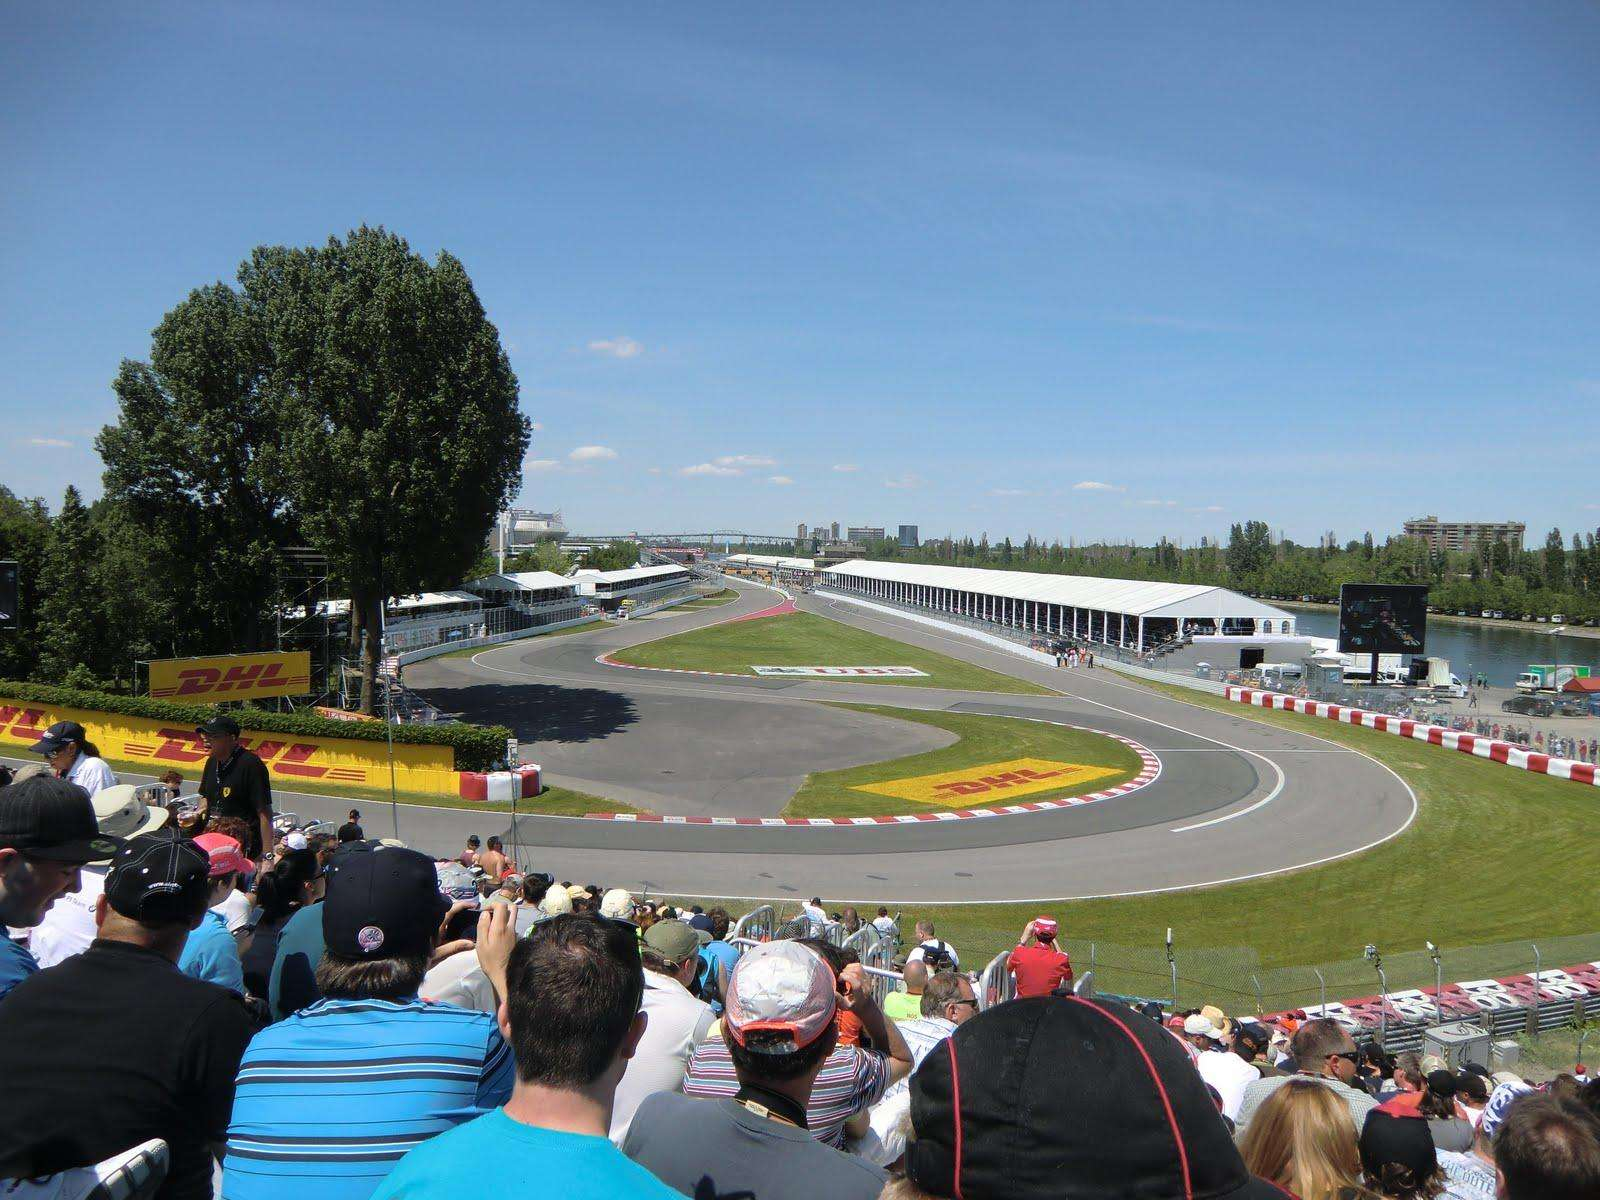 Where can I find Grand Prix Circuit budgets?